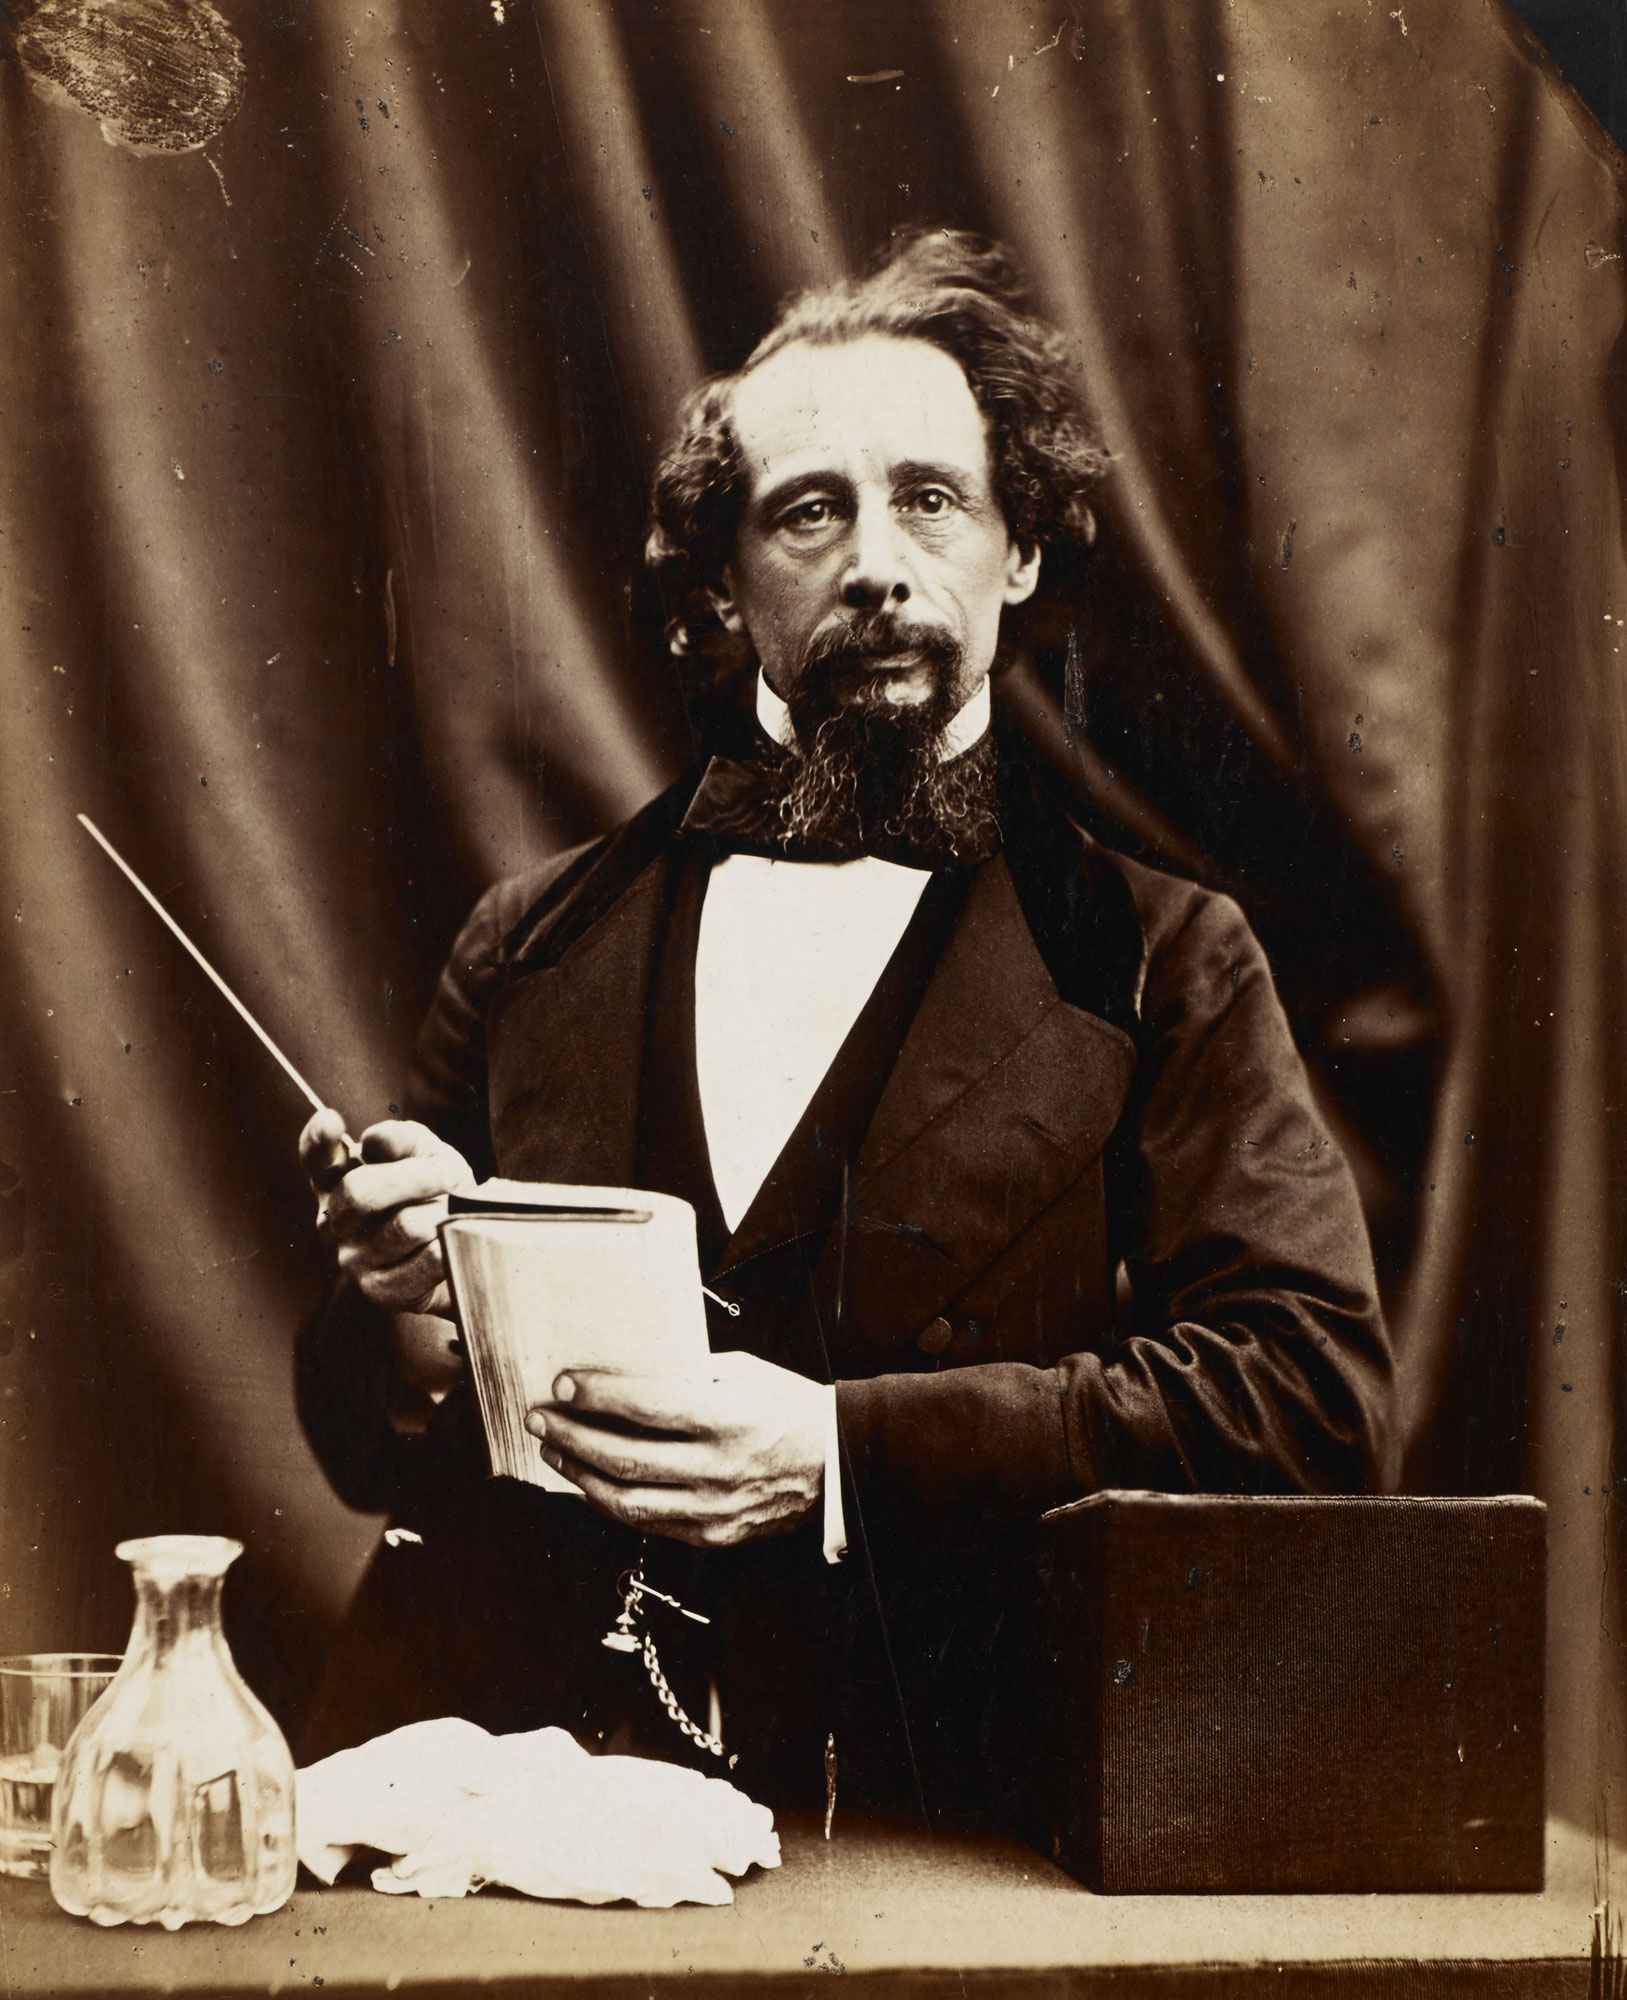 Photograph of Victorian novelist Charles Dickens, author of over 15 novels including Oliver Twist, Great Expectations and A Christmas Carol.